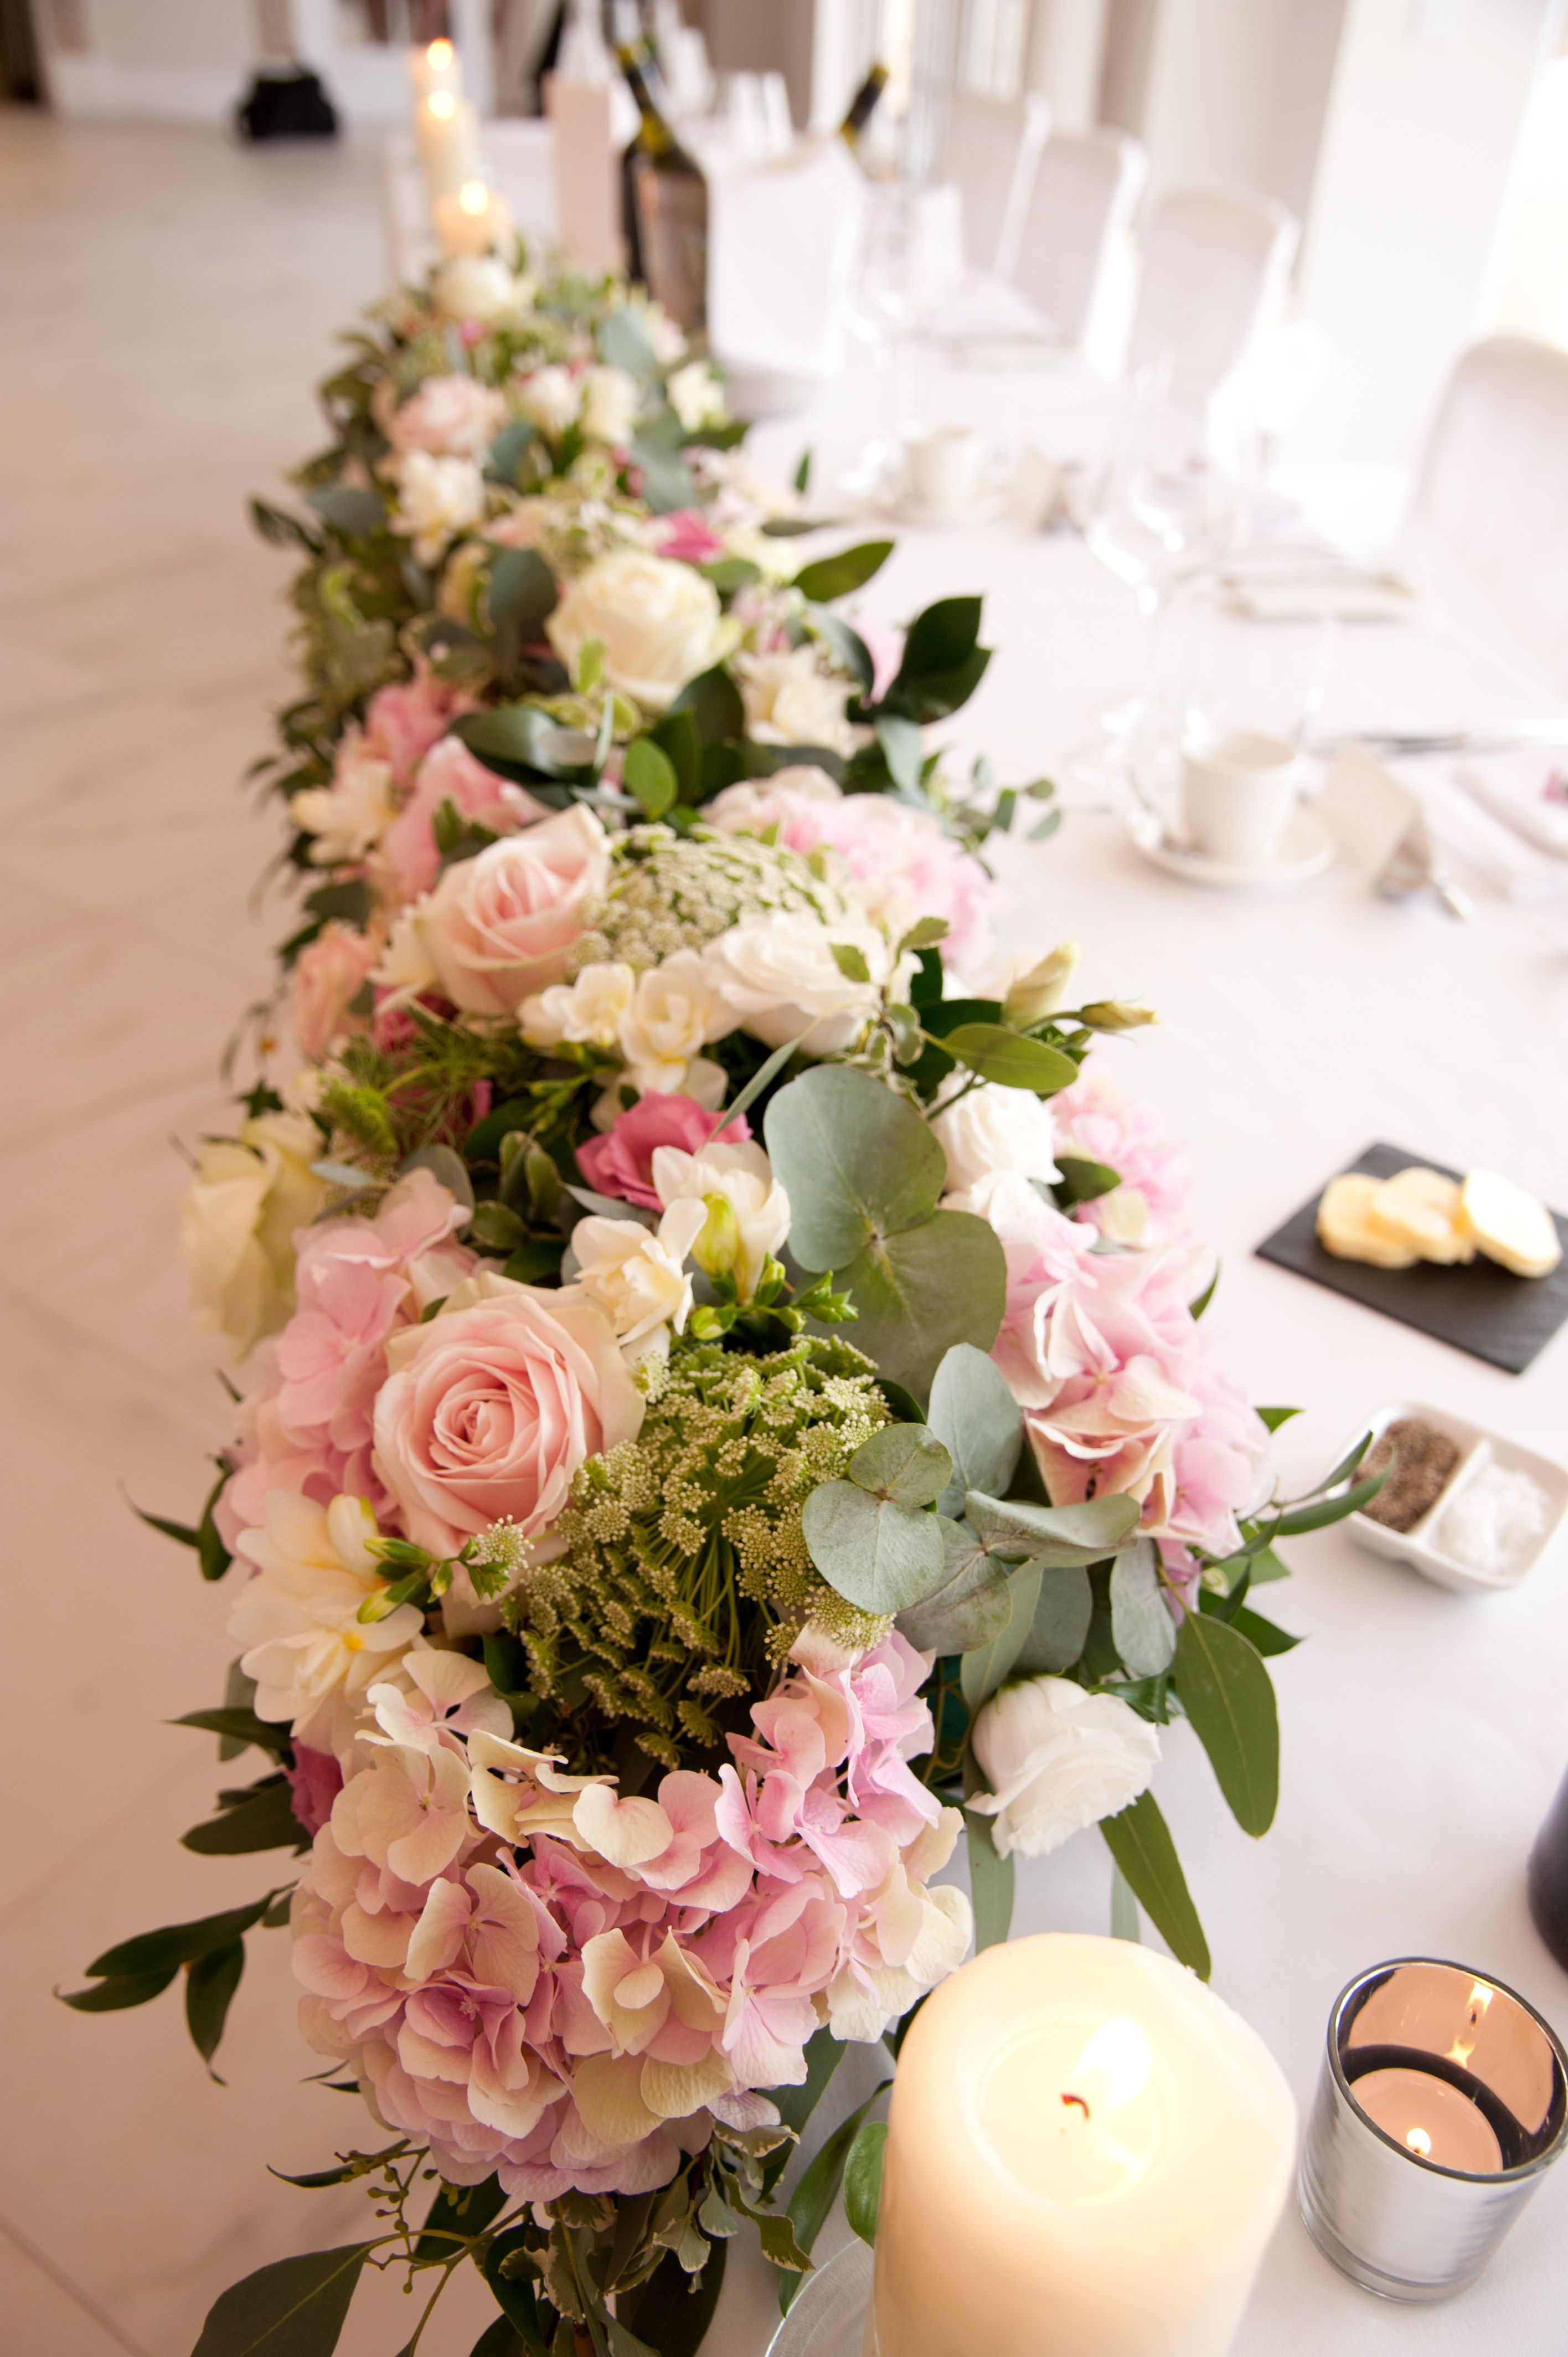 Top Table Design By Eden Blooms At Froyle Park Image Lawrence Photography Flowers Include Avalanche And Sweet Roses Silverstone Hydrangea